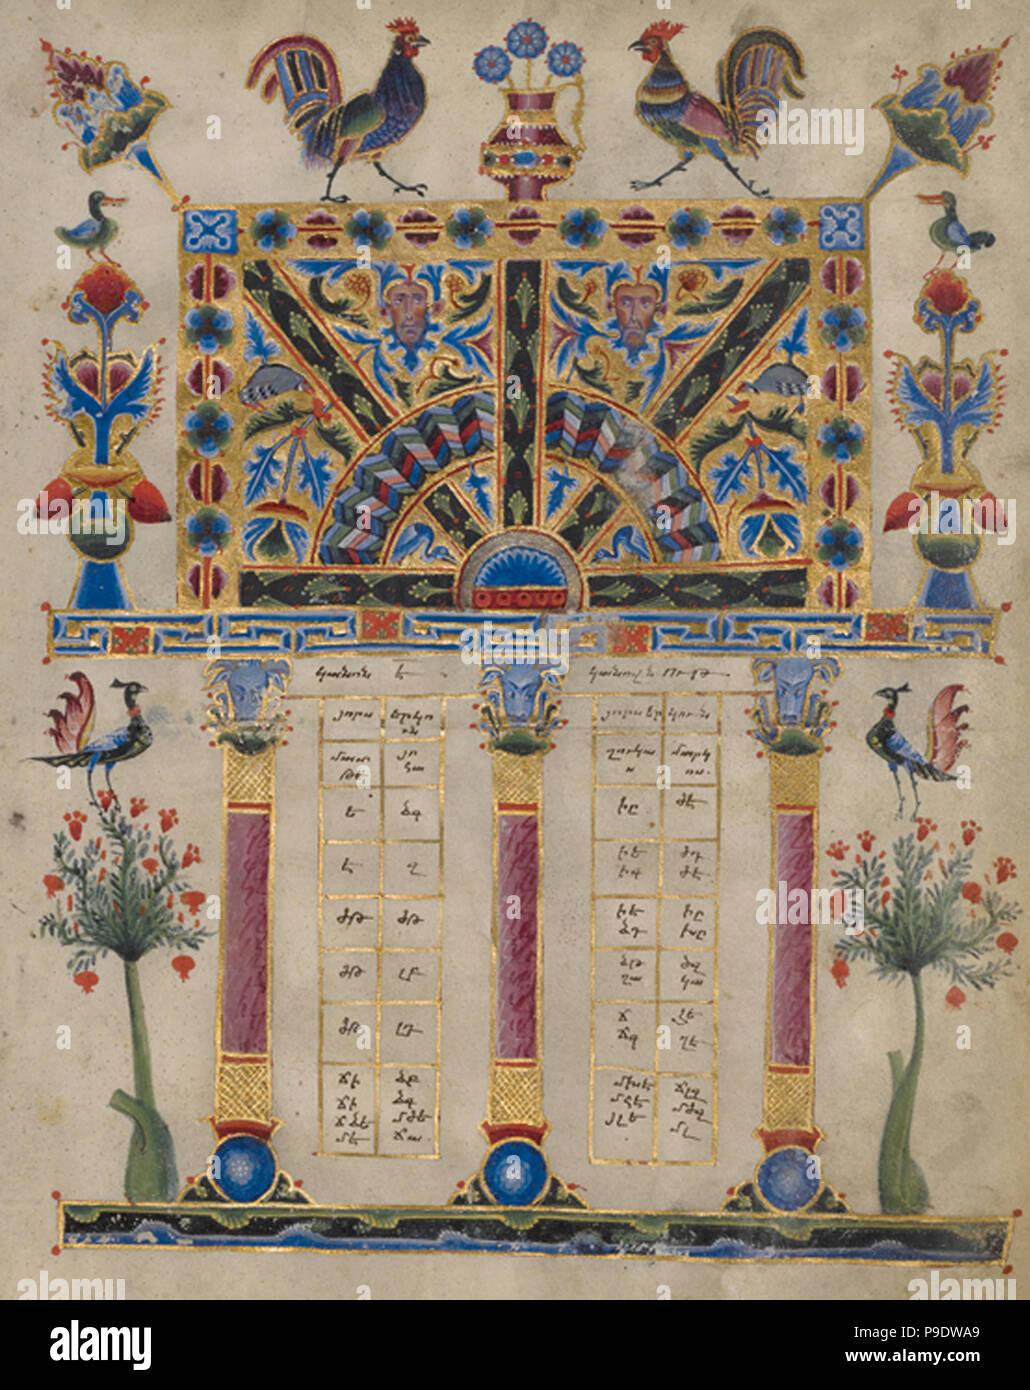 Canon Table Page; T'oros Roslin, Armenian, active 1256 - 1268; Hromklay, Armenia, Asia; 1256; Tempera and gold paint on parchment; Leaf: 26.5 x 19 cm (10 7/16 x 7 1/2 in.); 94.MB.71.3.6.recto - Stock Image